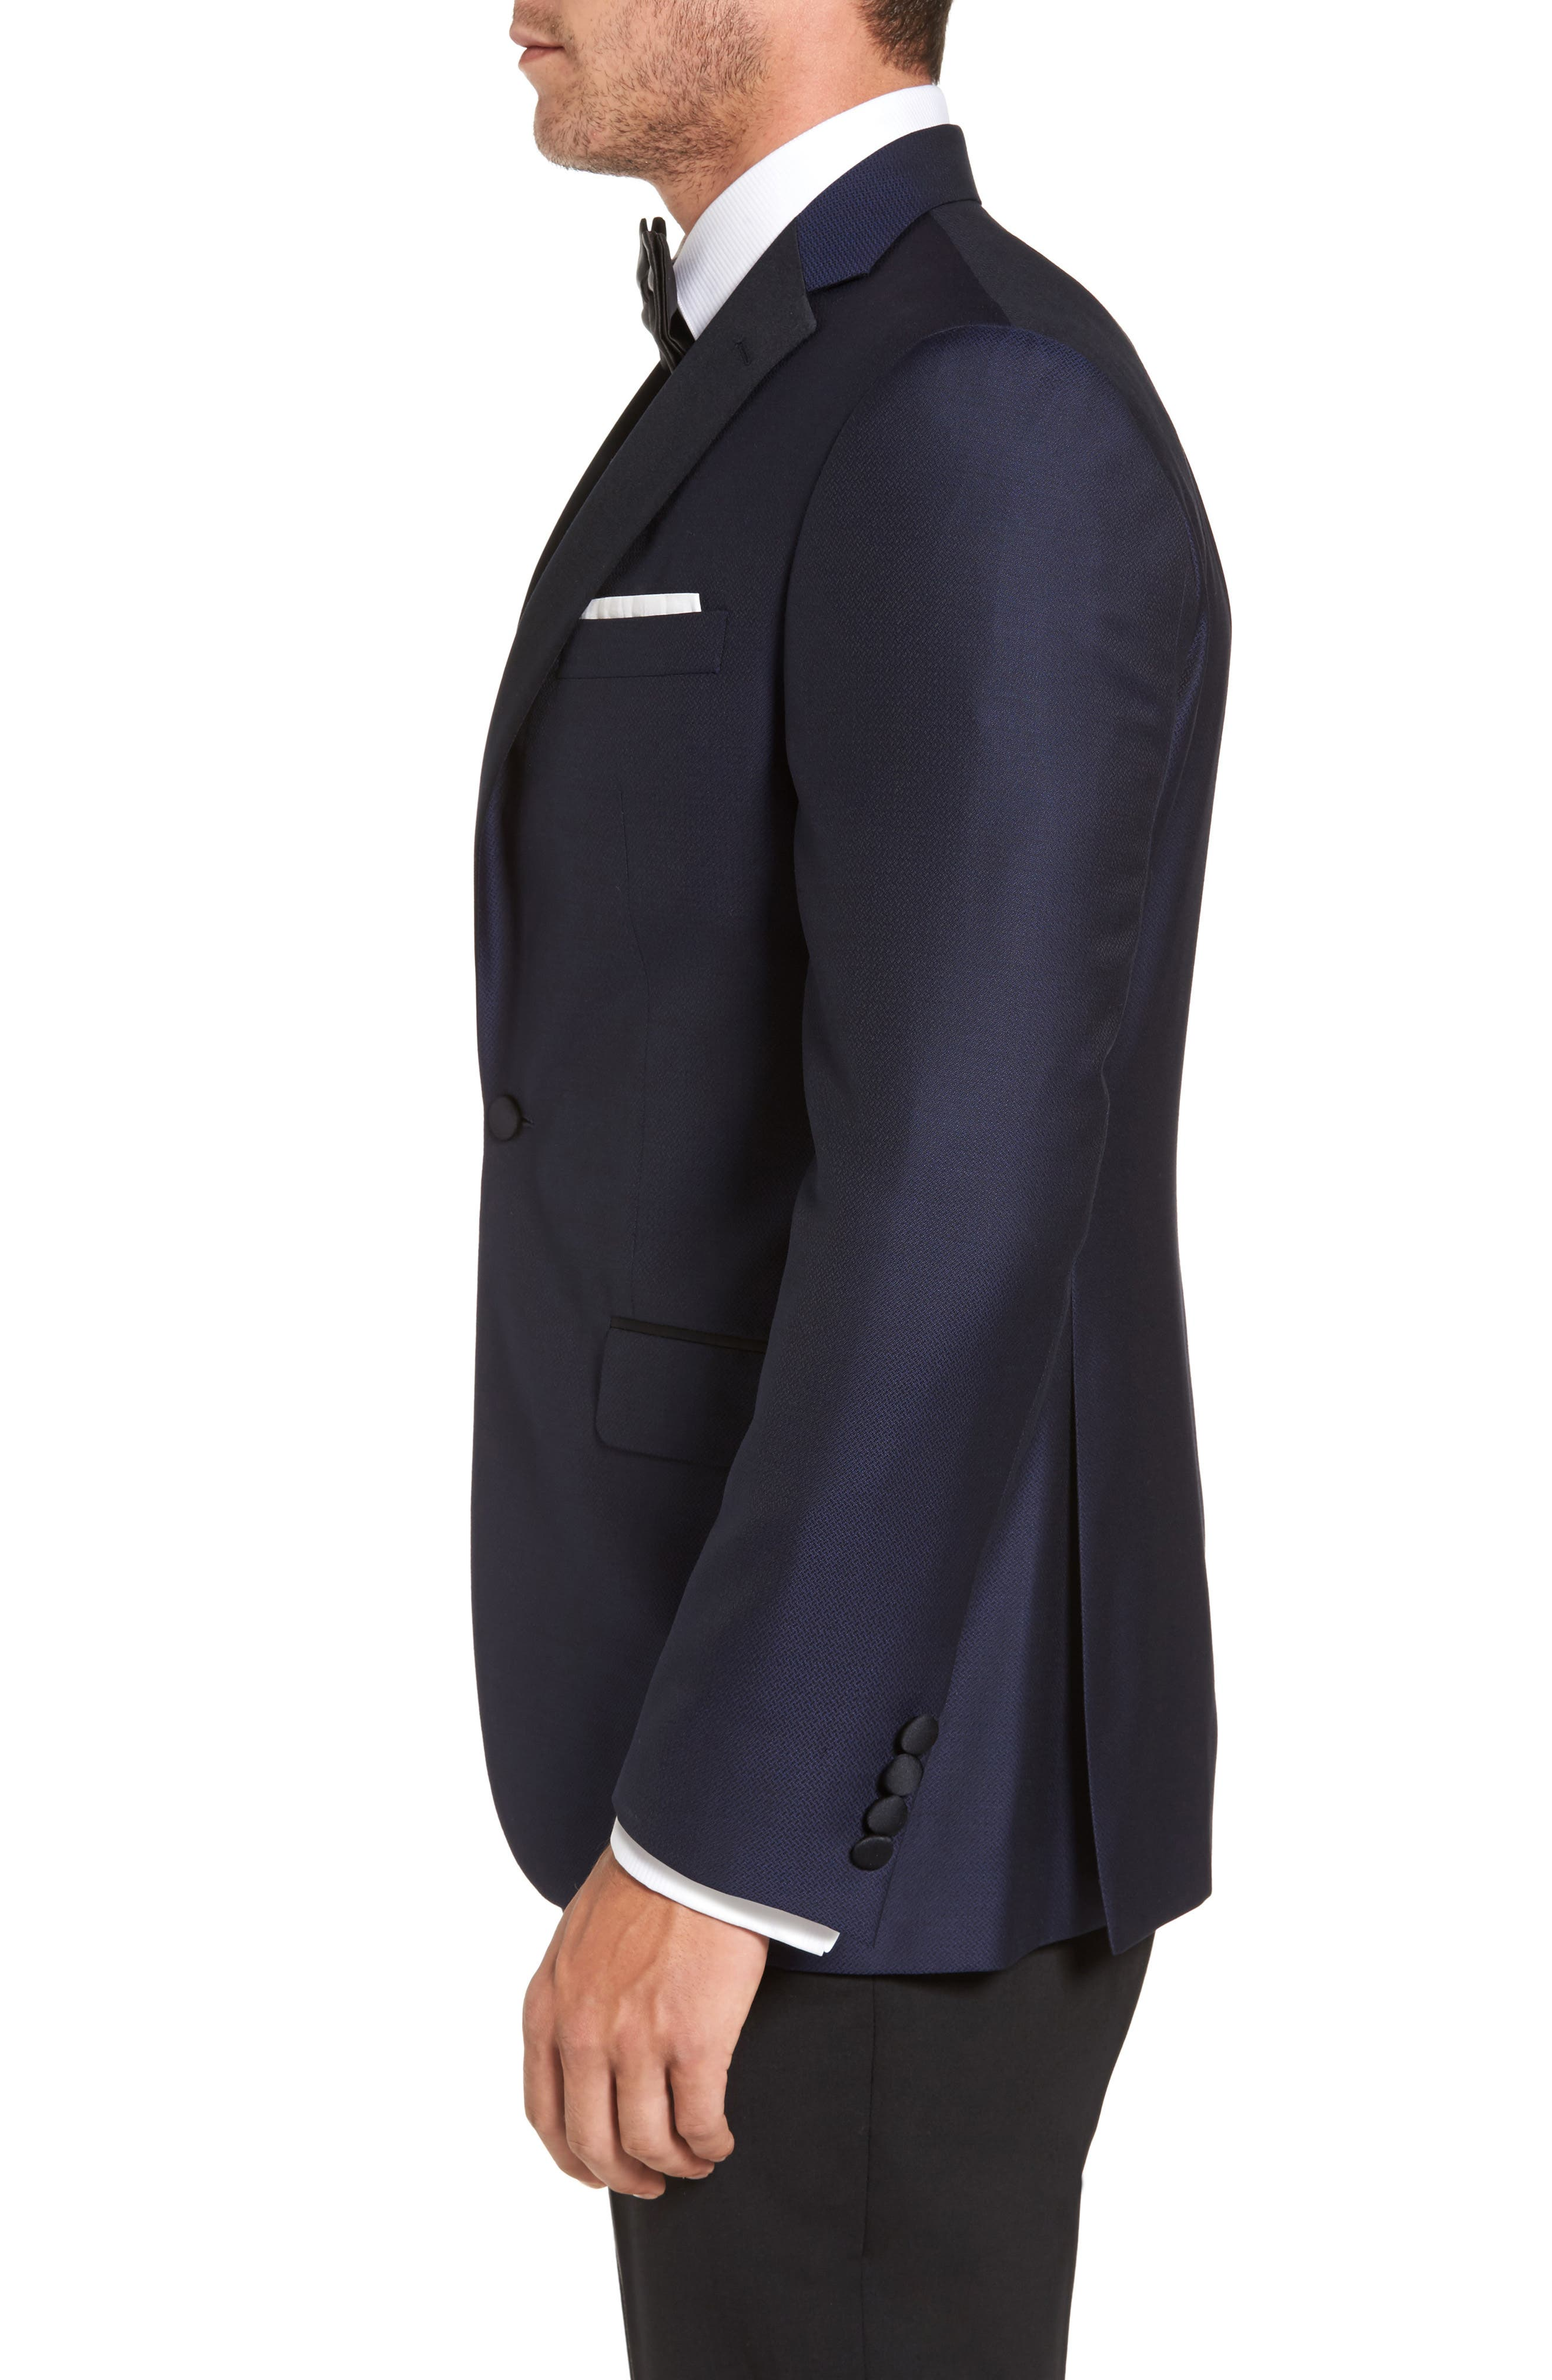 Reed Classic Fit Dinner Jacket,                             Alternate thumbnail 3, color,                             001